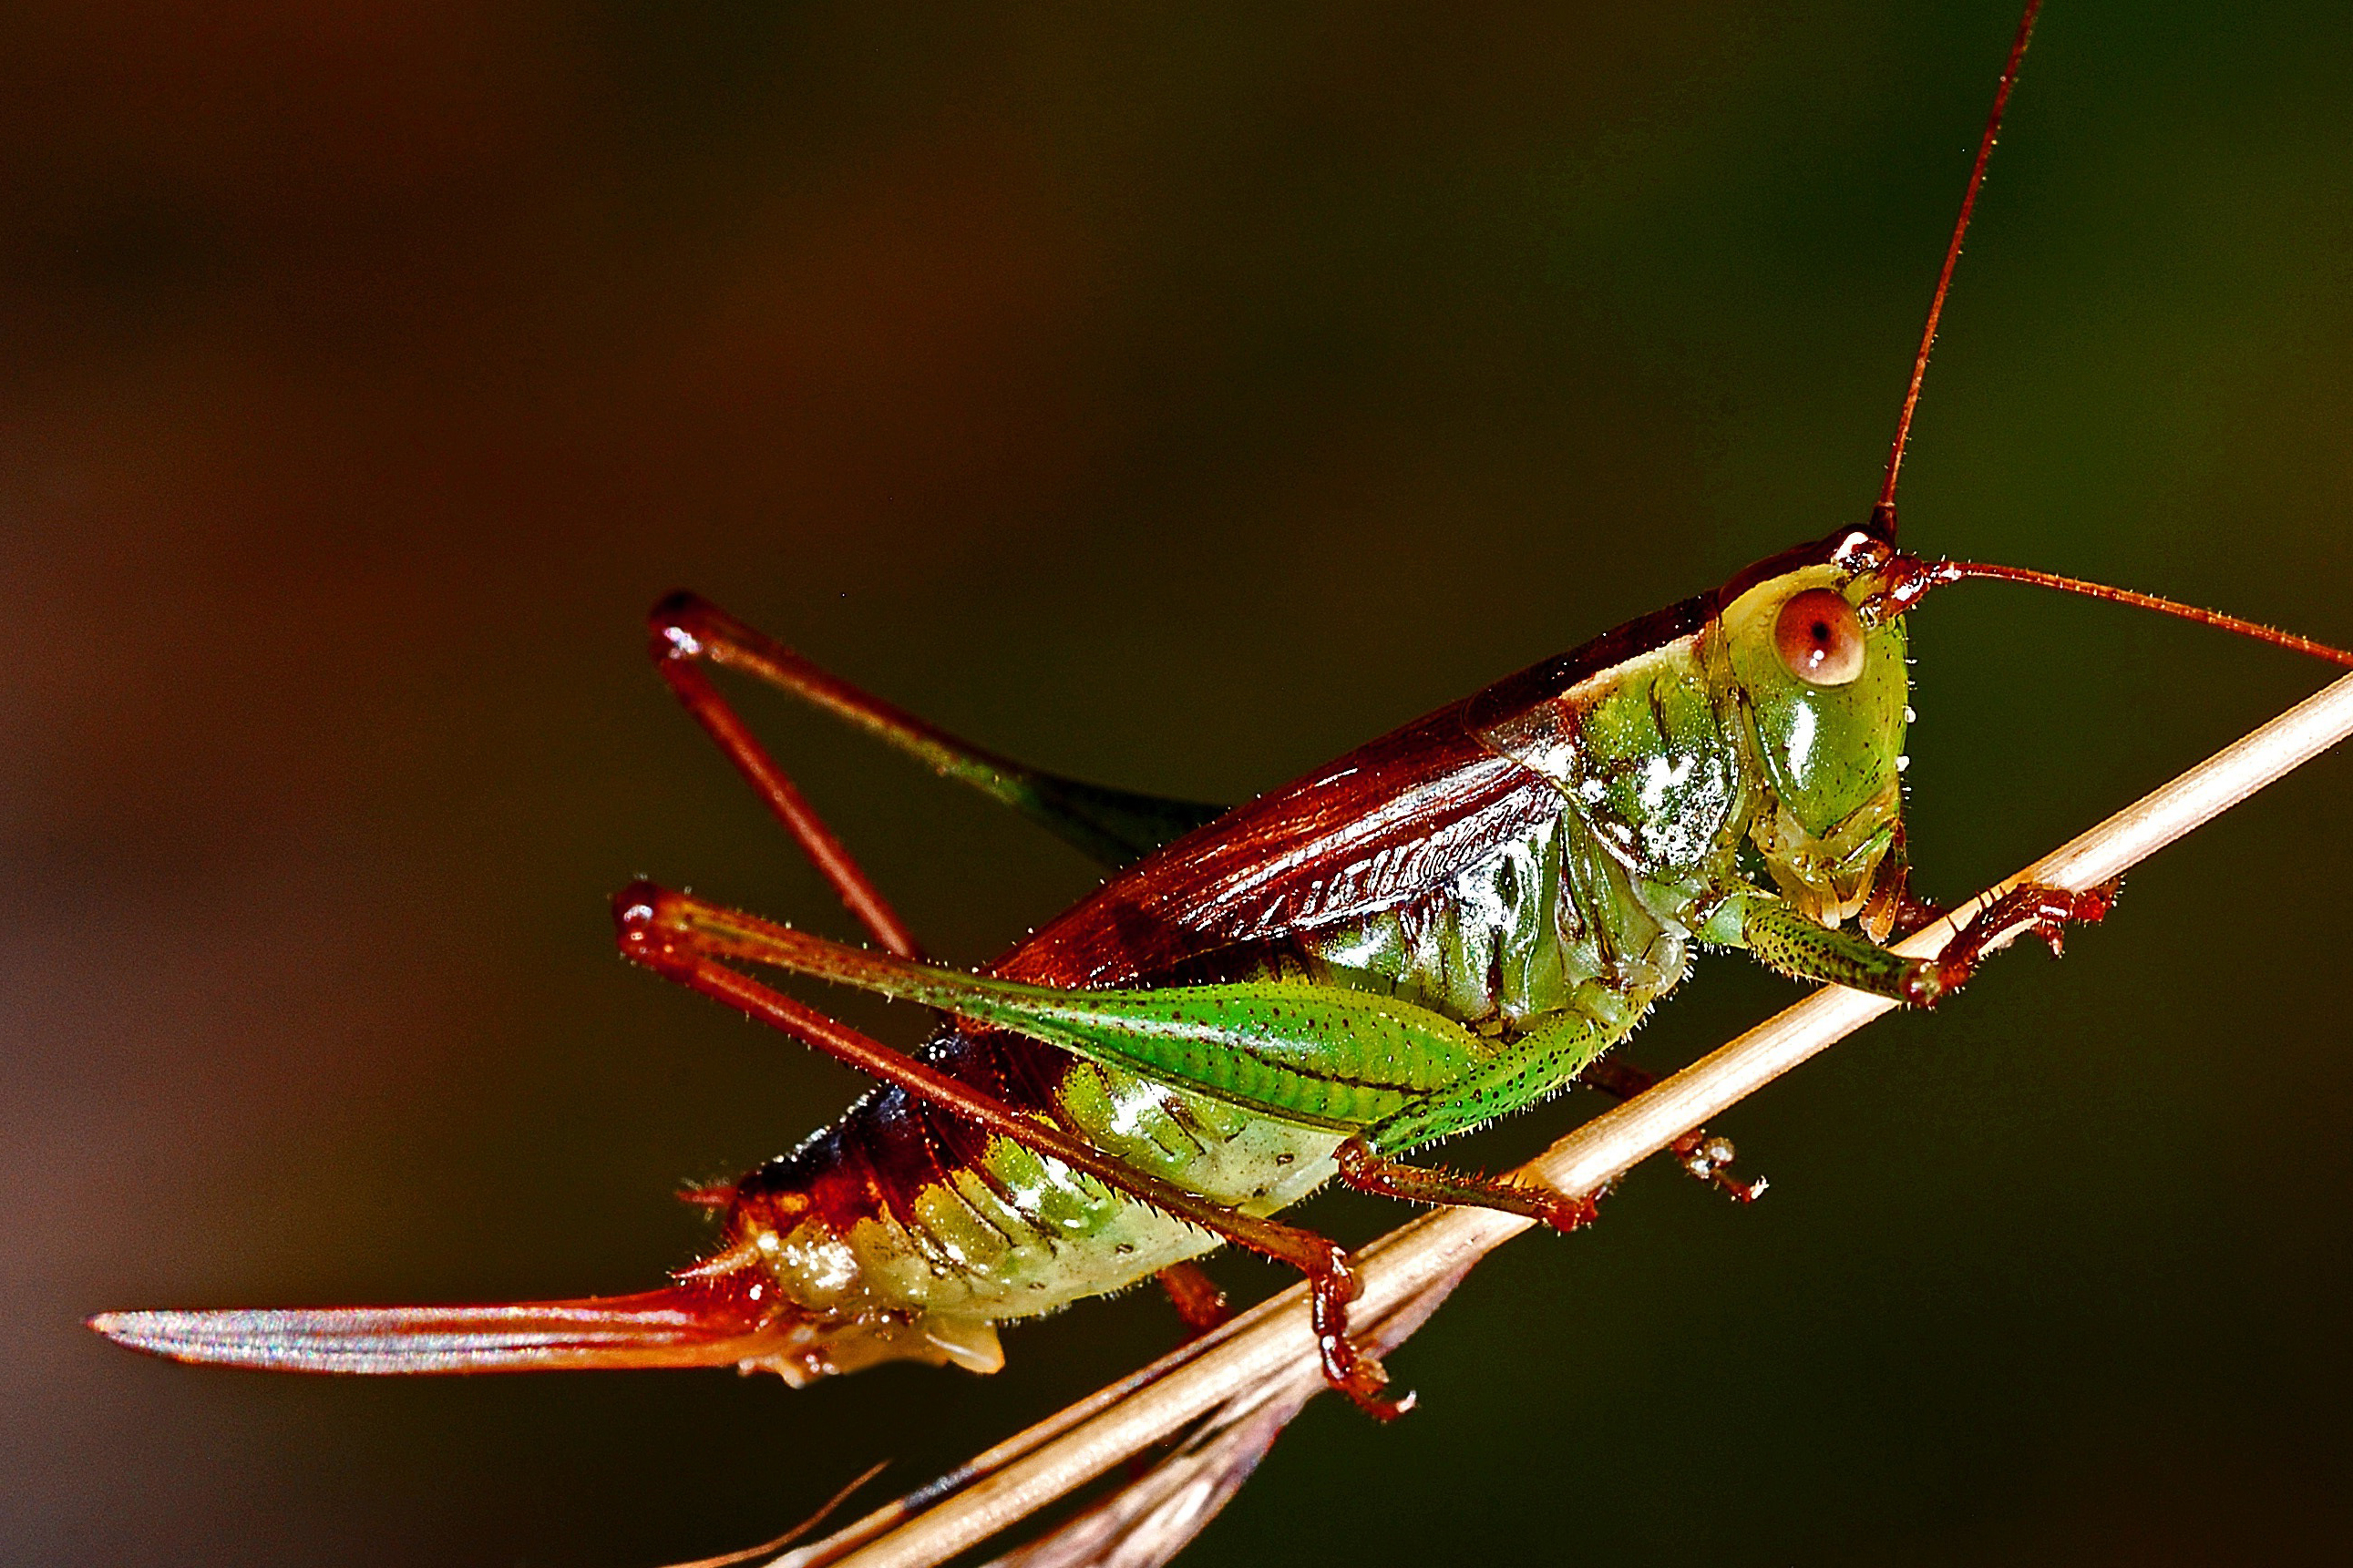 Lobster, insect, lobster, giant, green, green insects